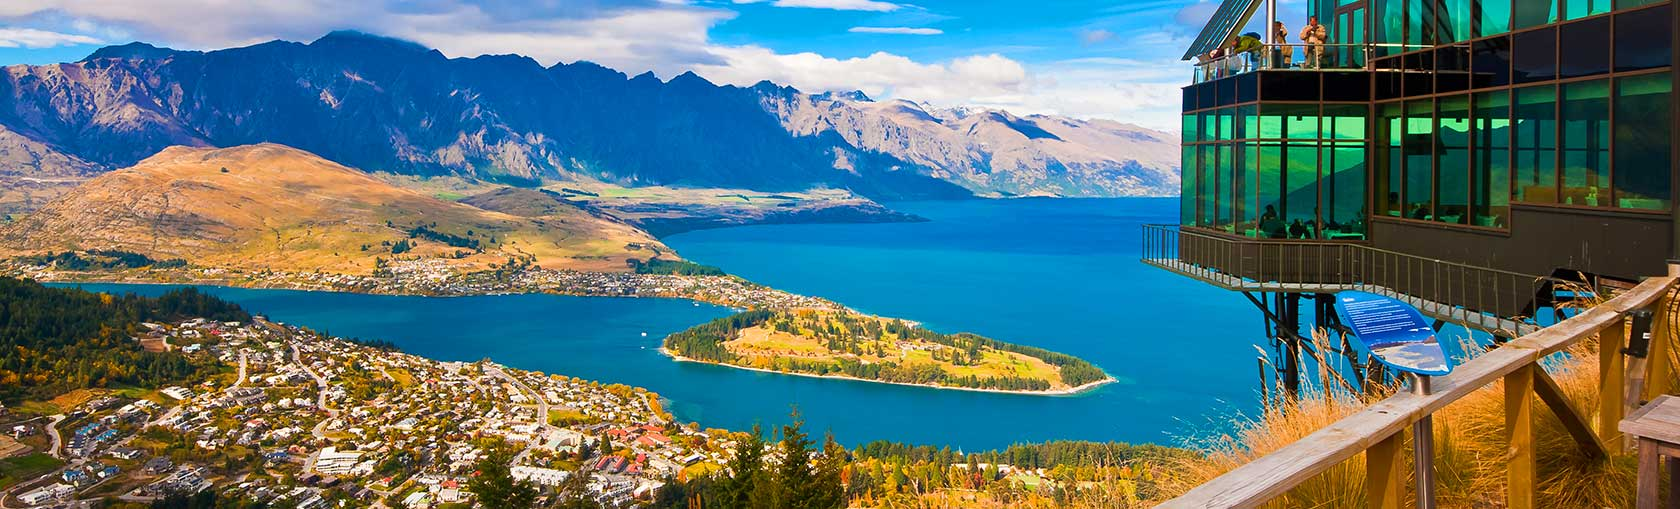 South Island Things To Do New Zealand